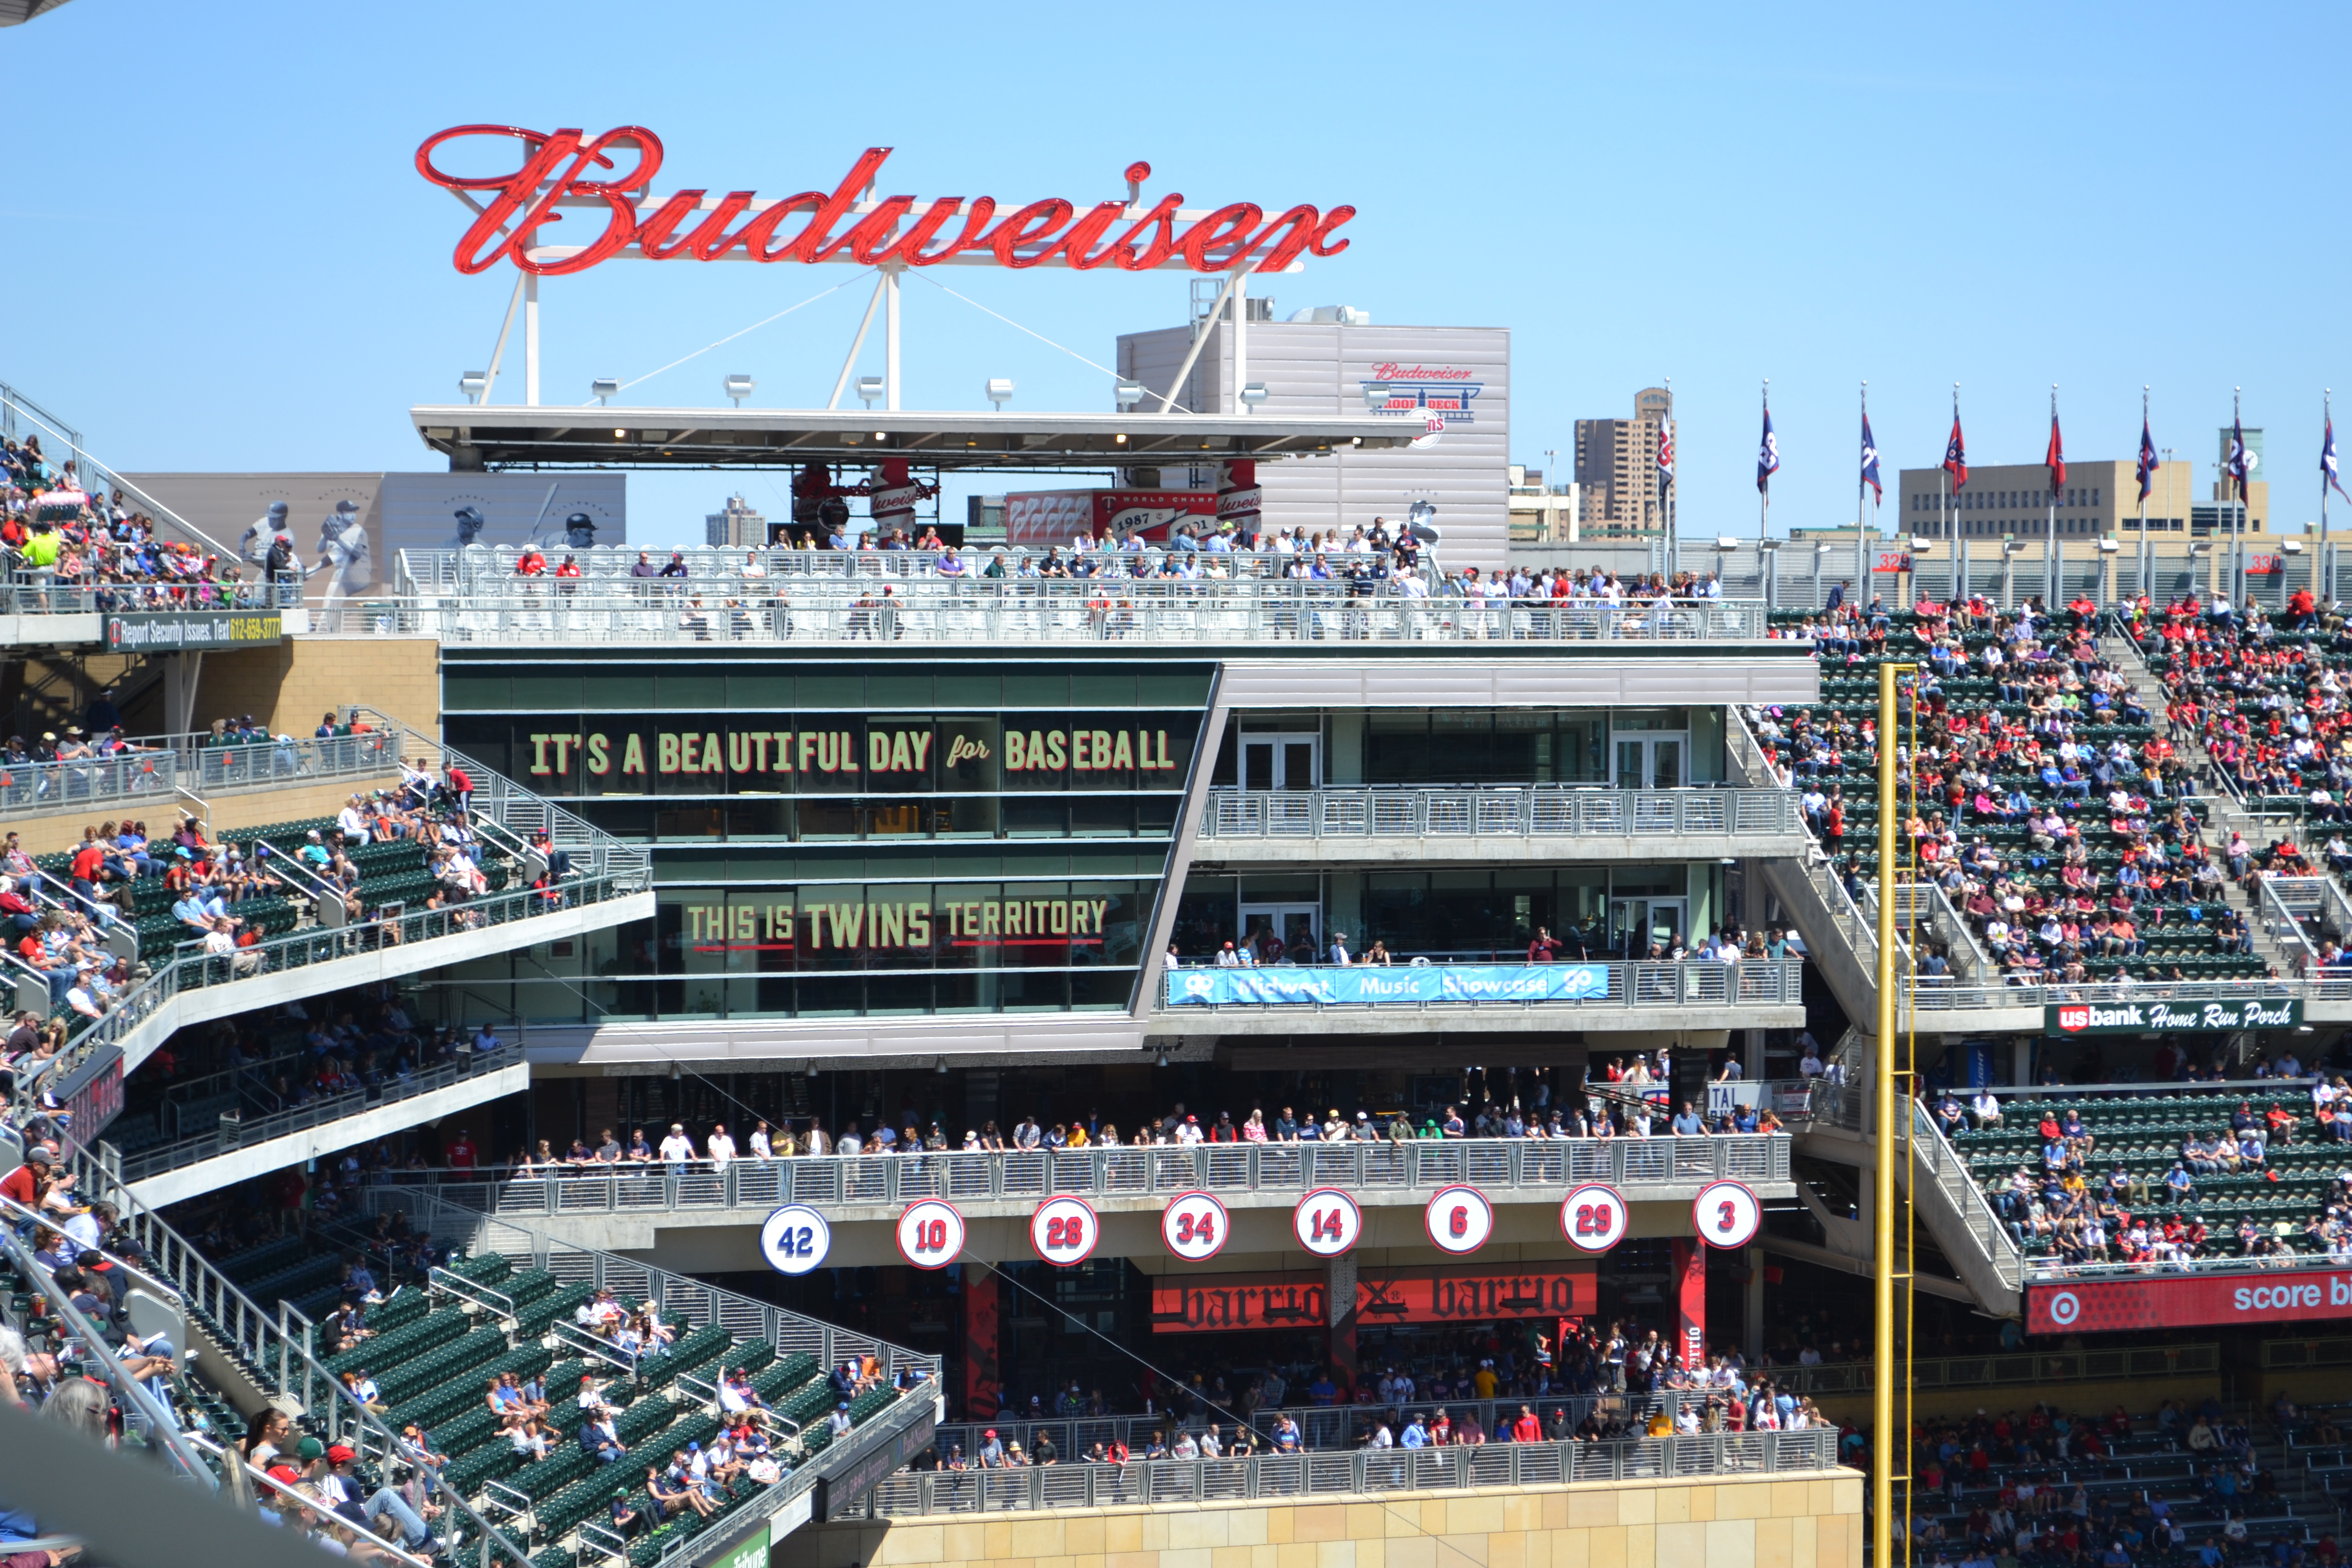 Wall Design Graphics For Target Field Renovation In